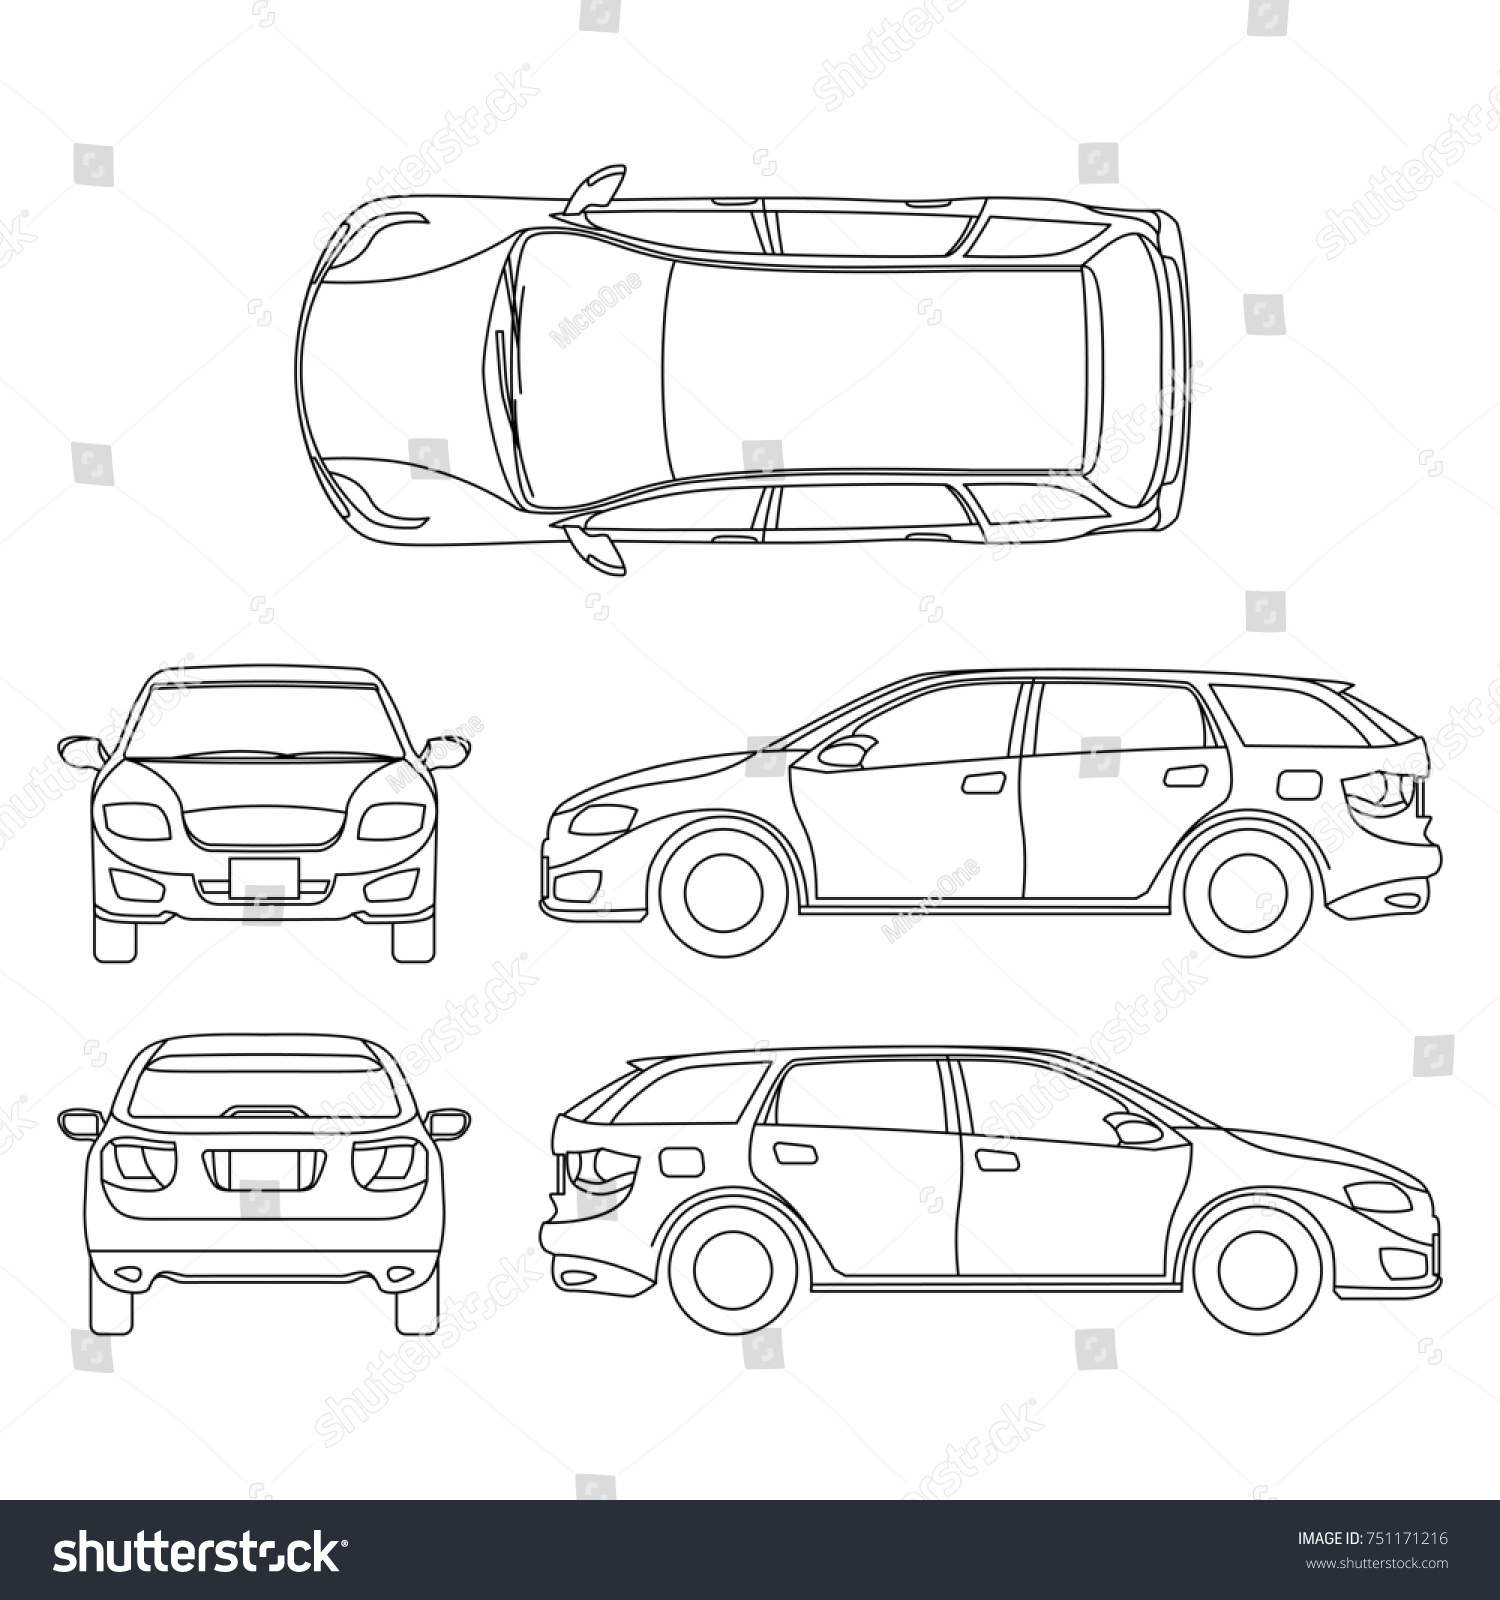 Line Drawing Vehicles : Line drawing car white vehicle computer stock illustration